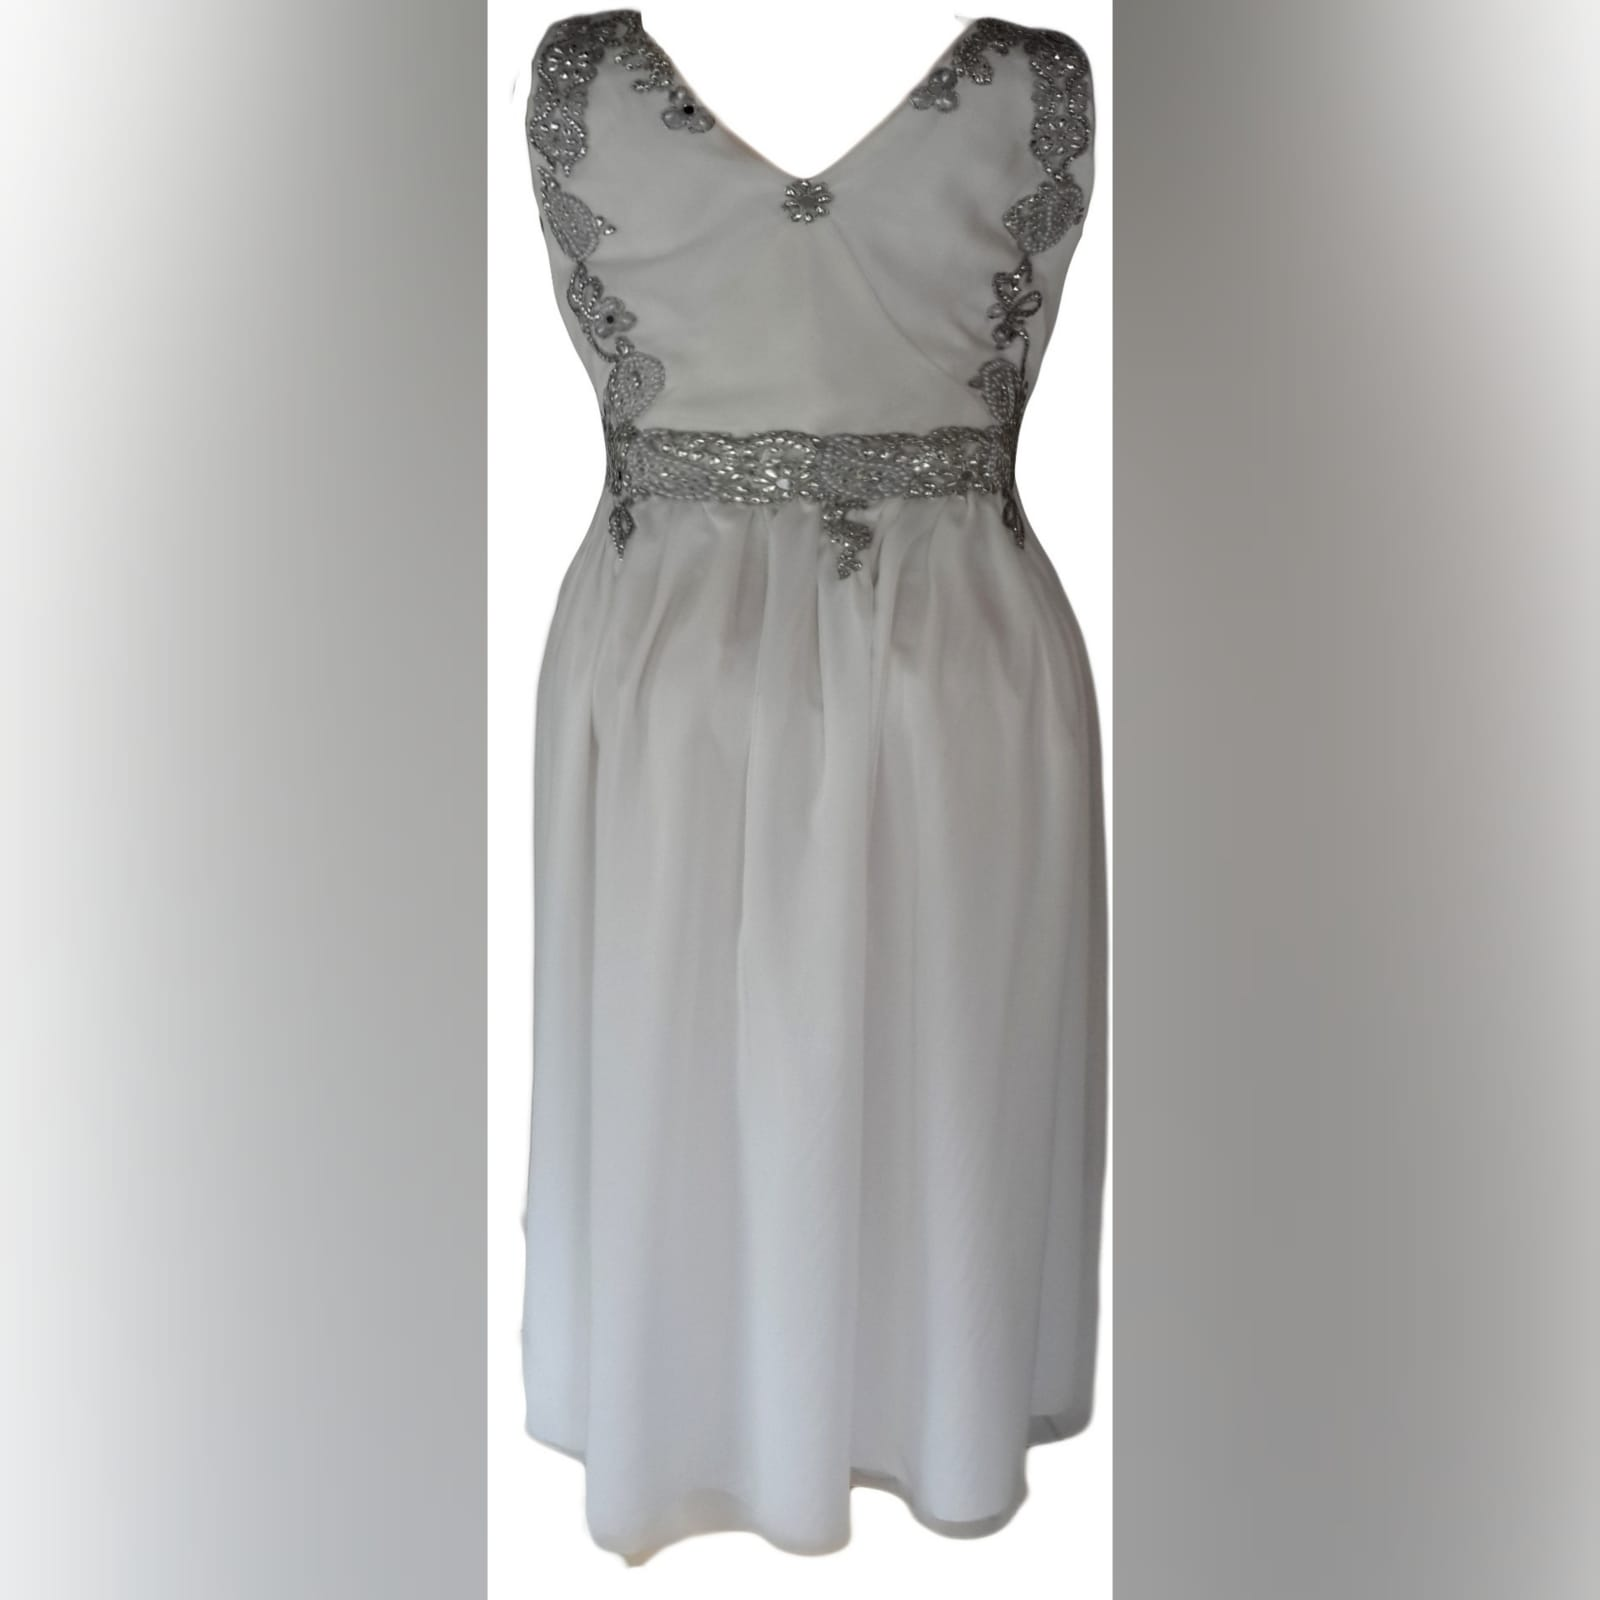 White and silver cross busted flowy wedding dress 3 white and silver cross busted ruched flowy empire fit wedding dress. Front and back detailed with silver bling.